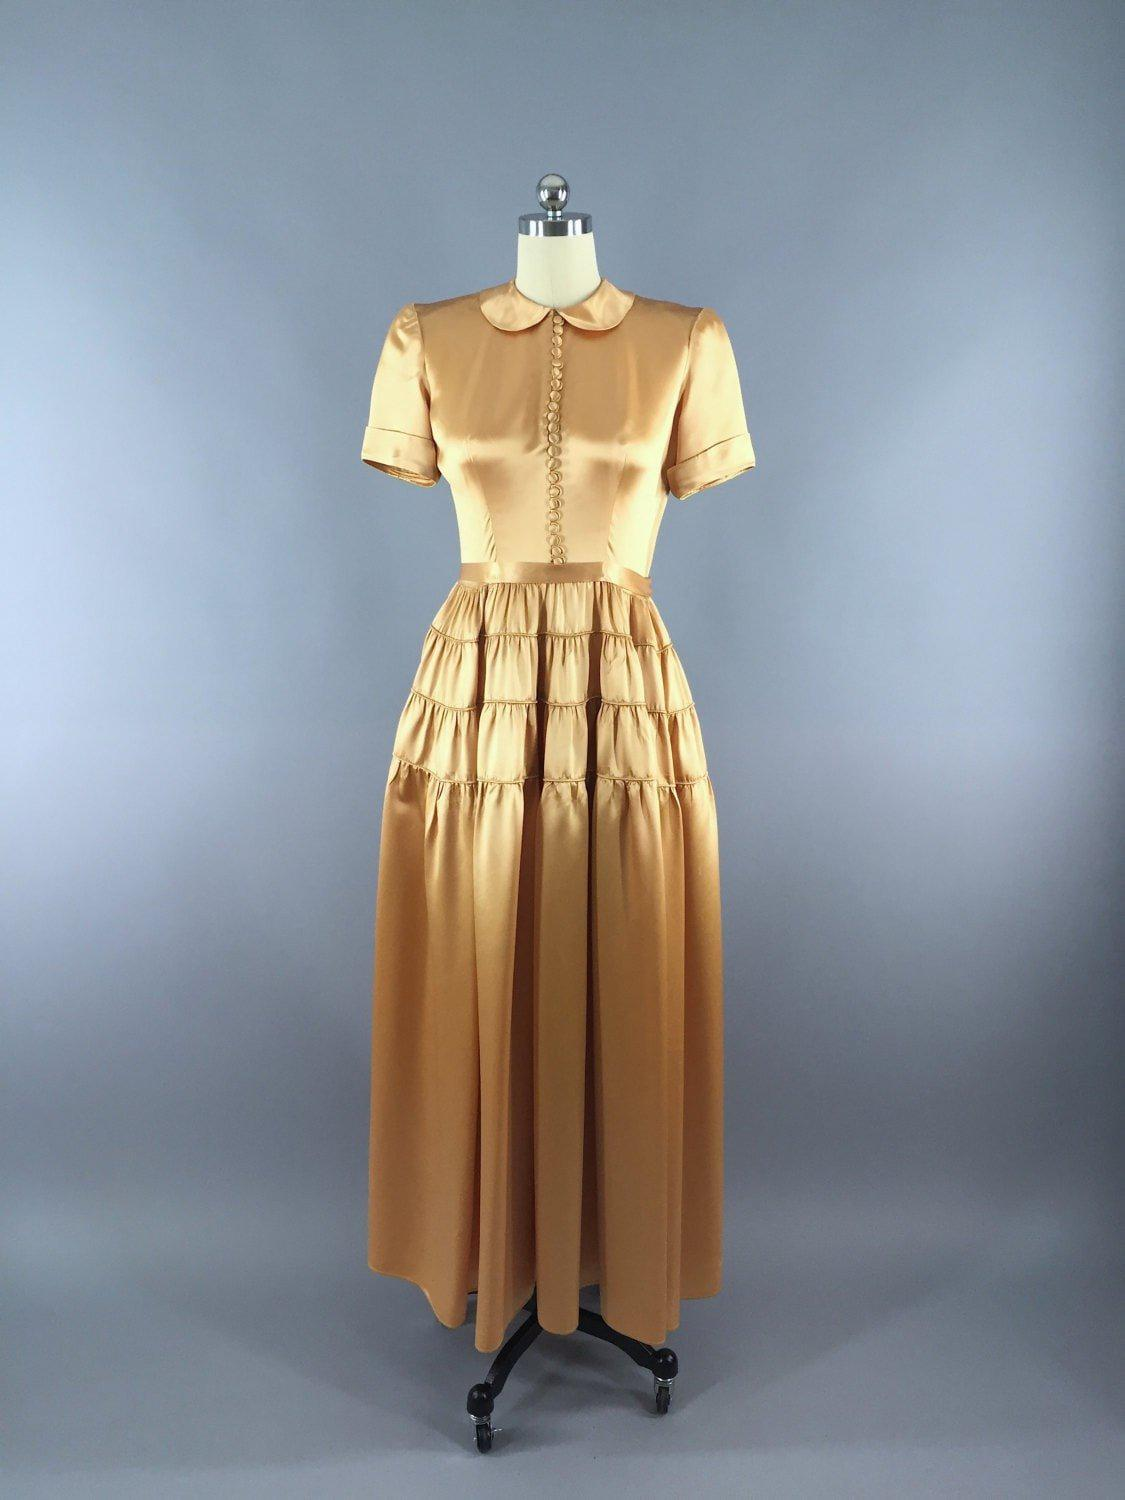 a7001b90ab08 Vintage 1940s Fred Perlberg Gold Satin Gown Maxi Dress